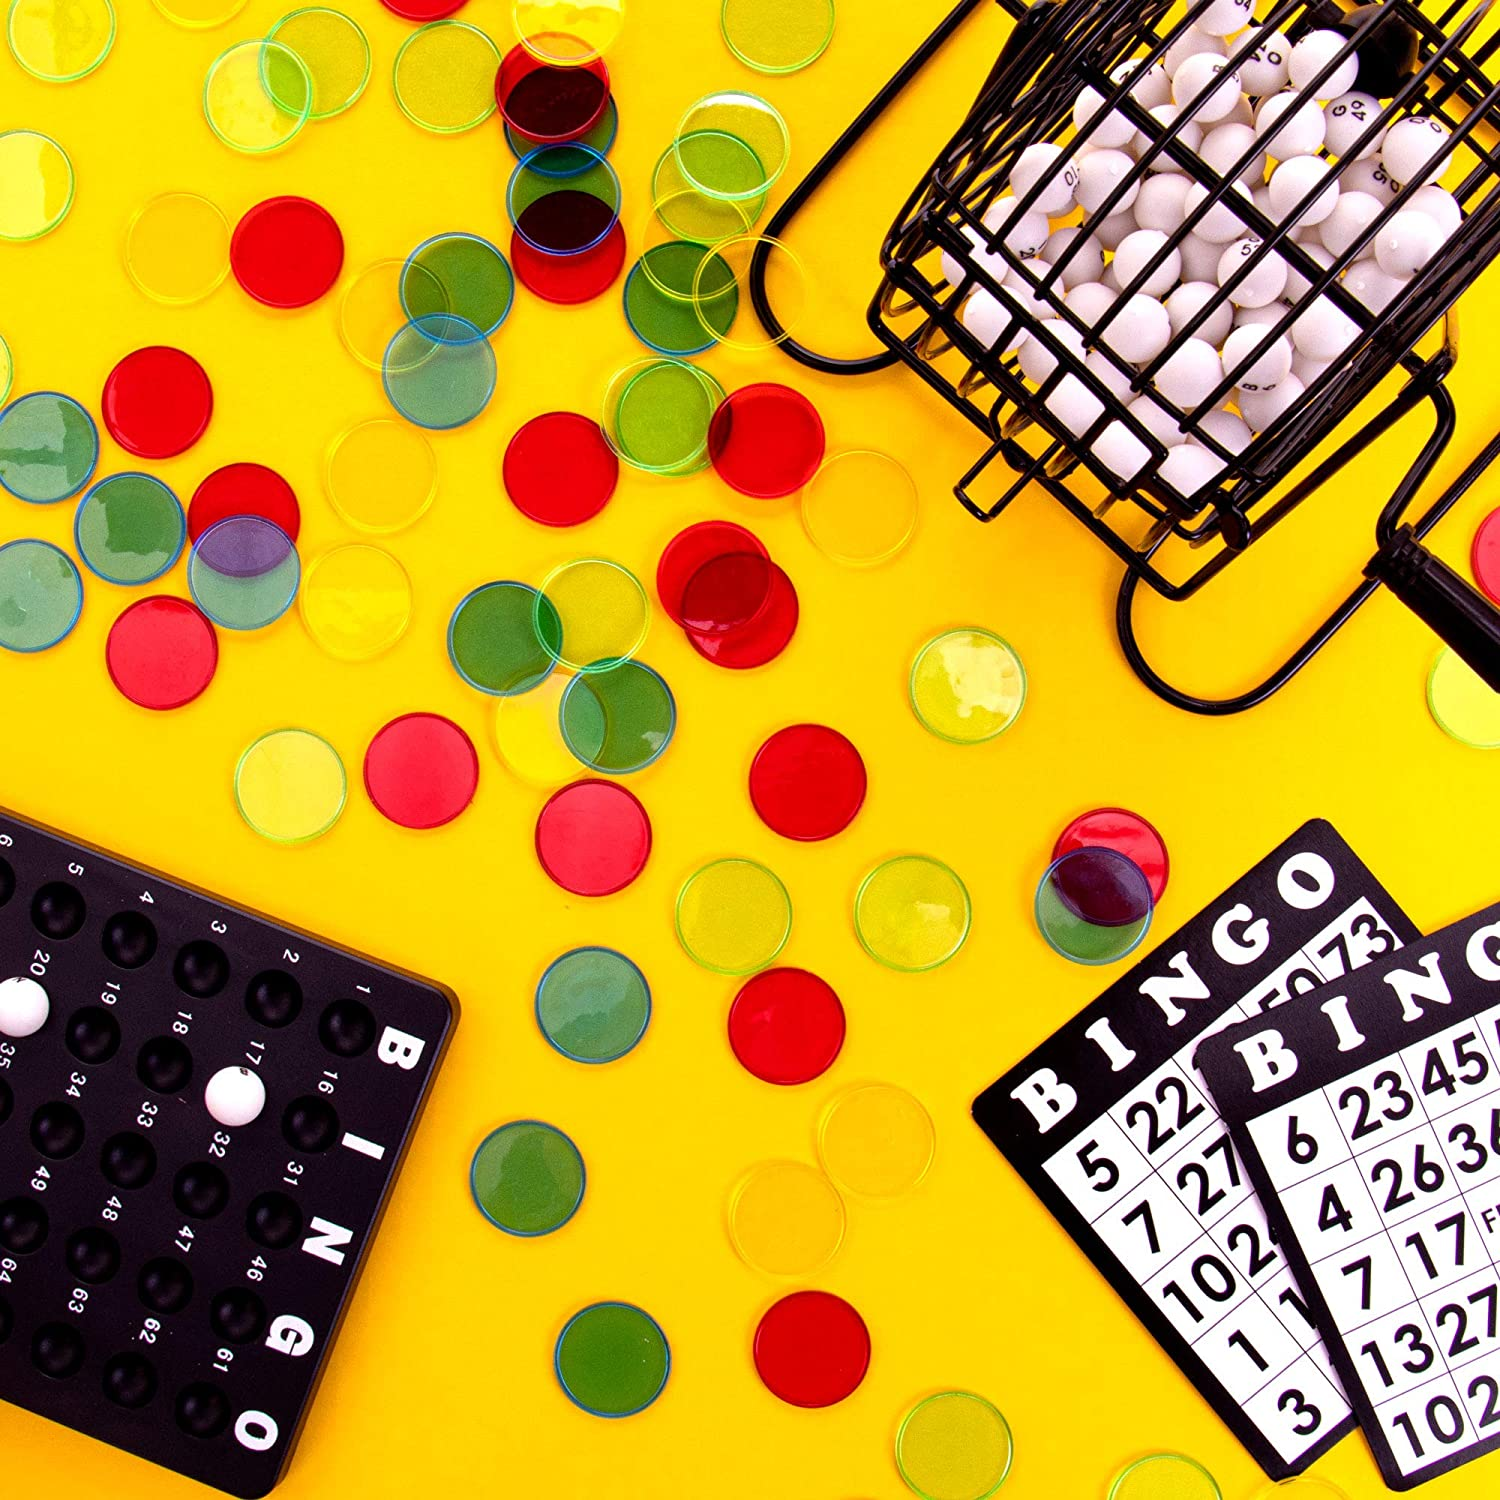 Educational STEM Resource Kids Classroom Large Translucent Colored Counting Markers for Elementary and Early Childhood Math Games 100 Jumbo 1.25 Bingo Chips for Large Print Cards